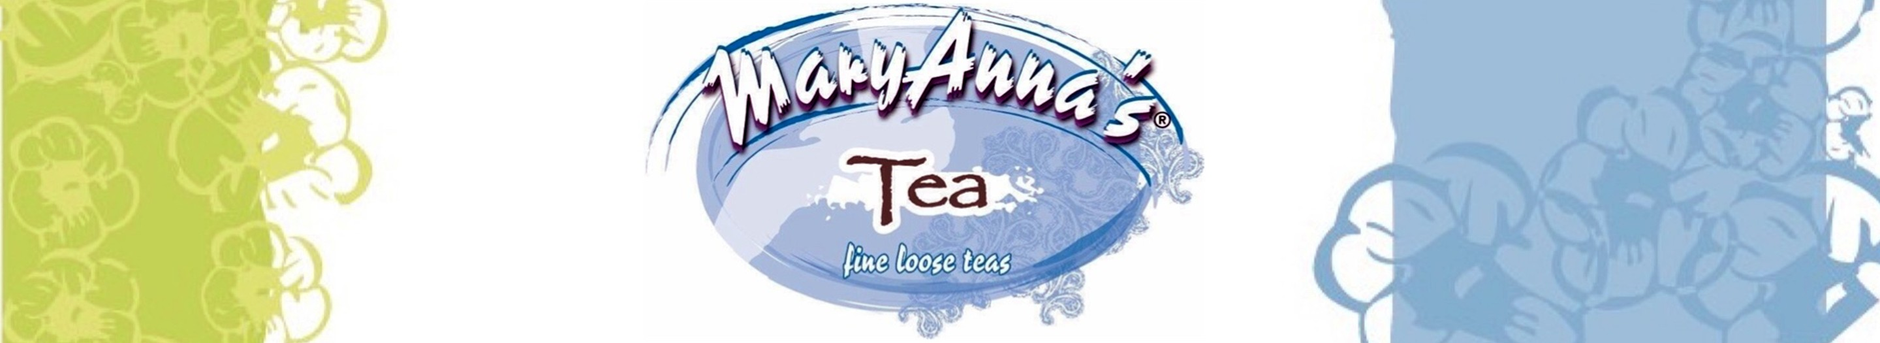 MaryAnna's Tea